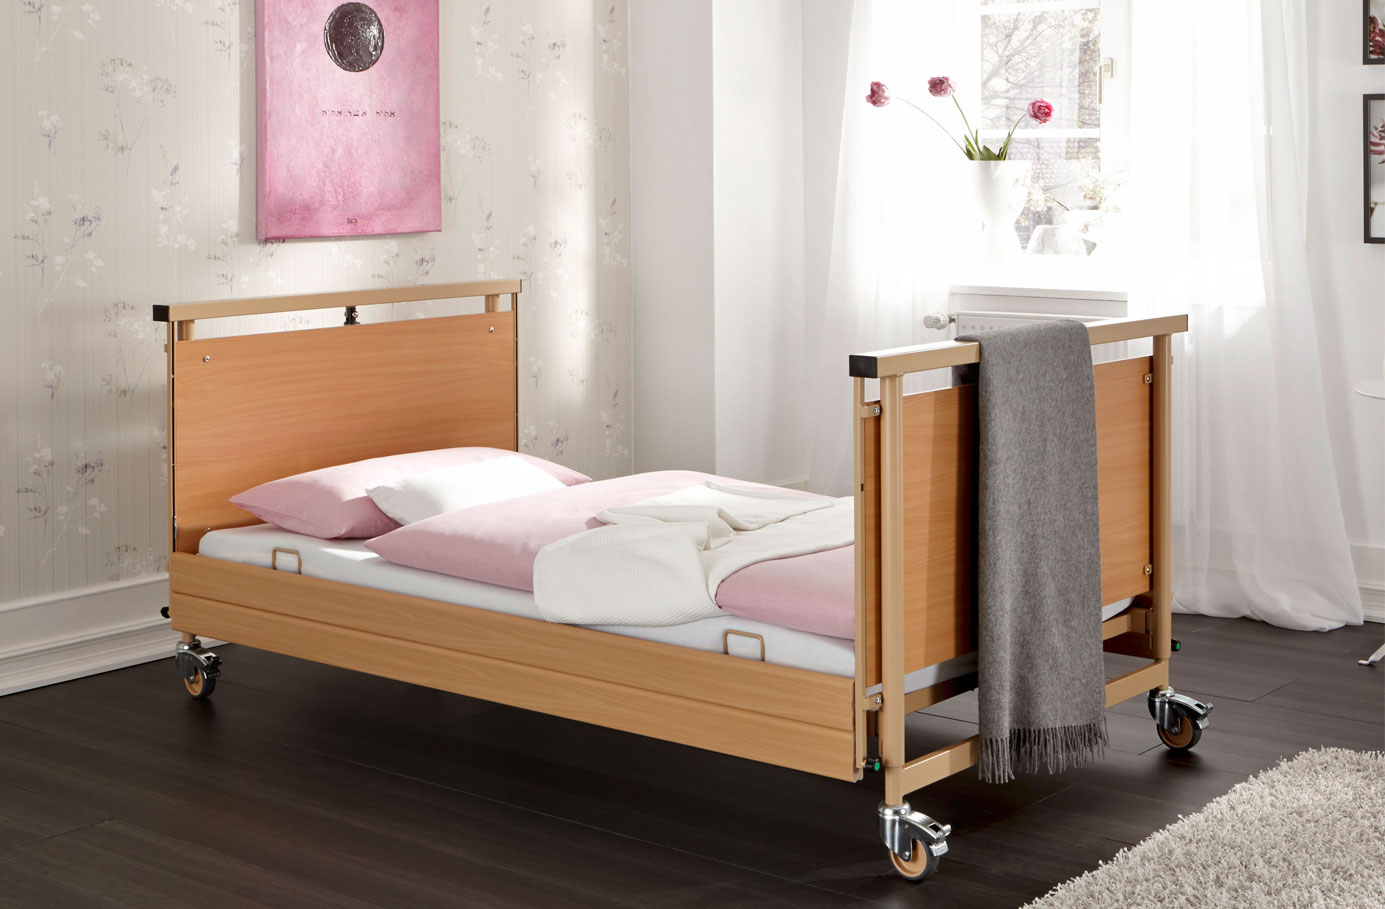 pflegebett allura pflegebetten burmeier. Black Bedroom Furniture Sets. Home Design Ideas